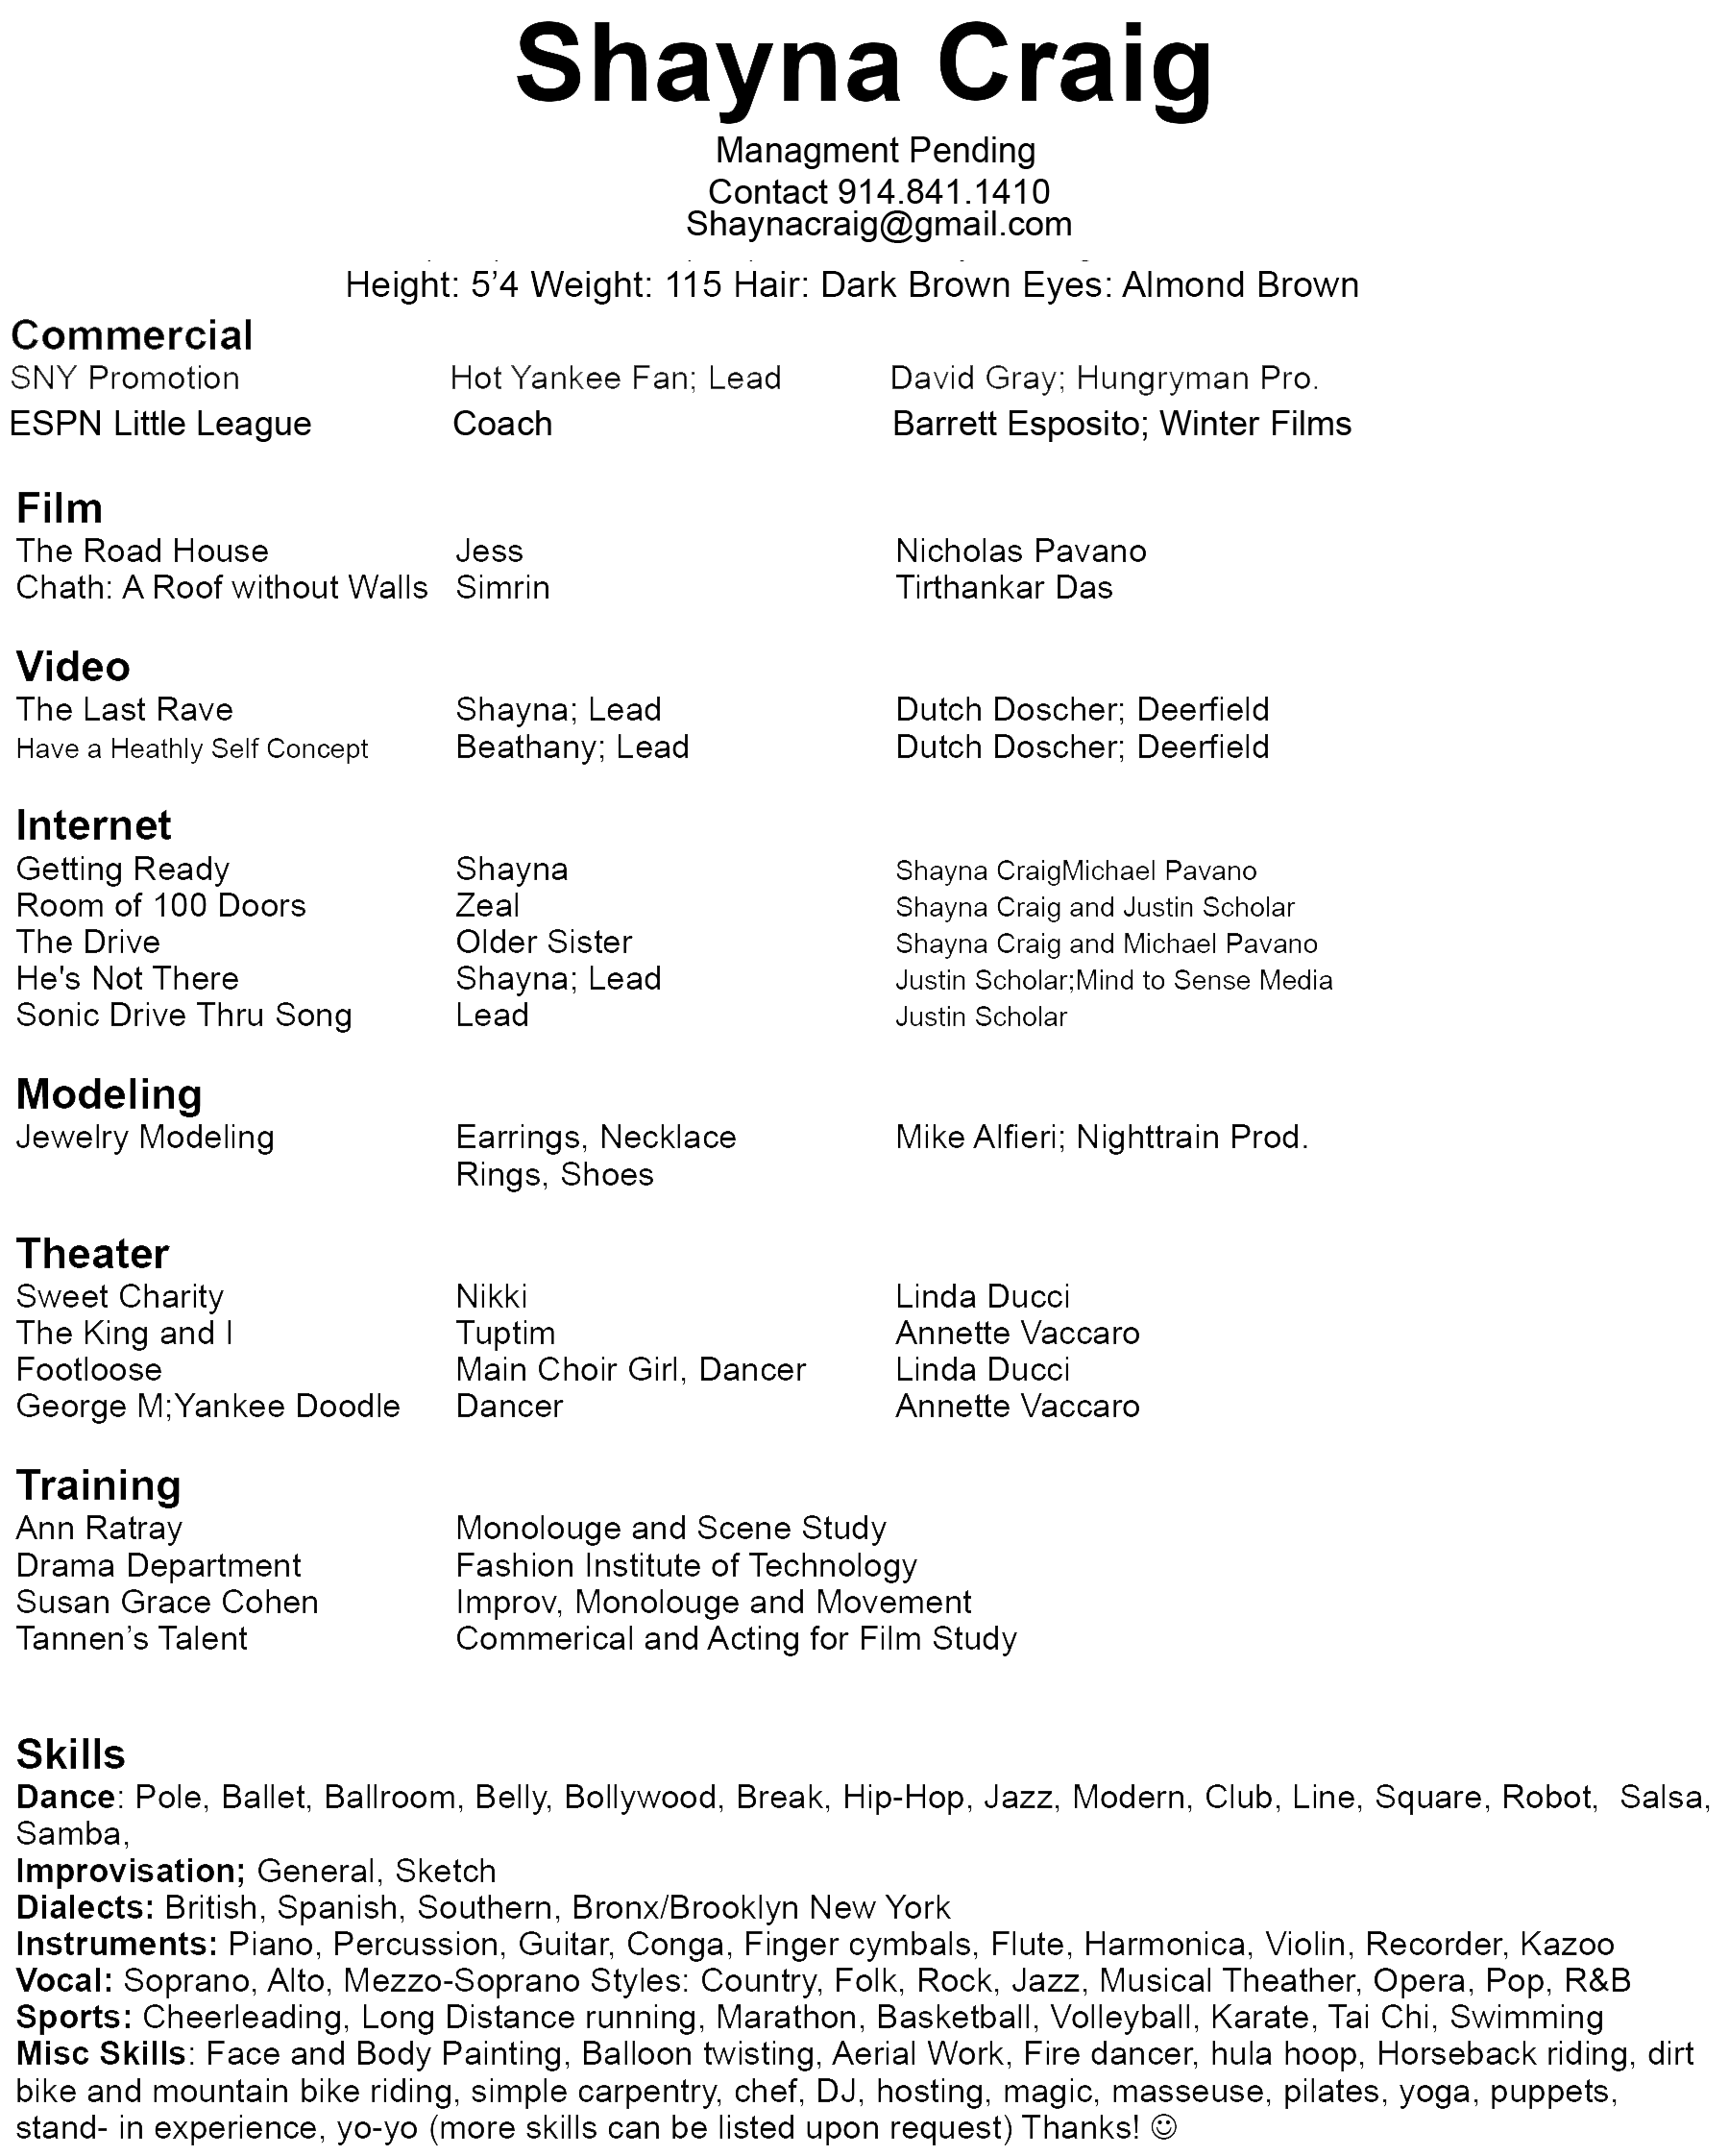 Shayna Craig Resume for SS.png